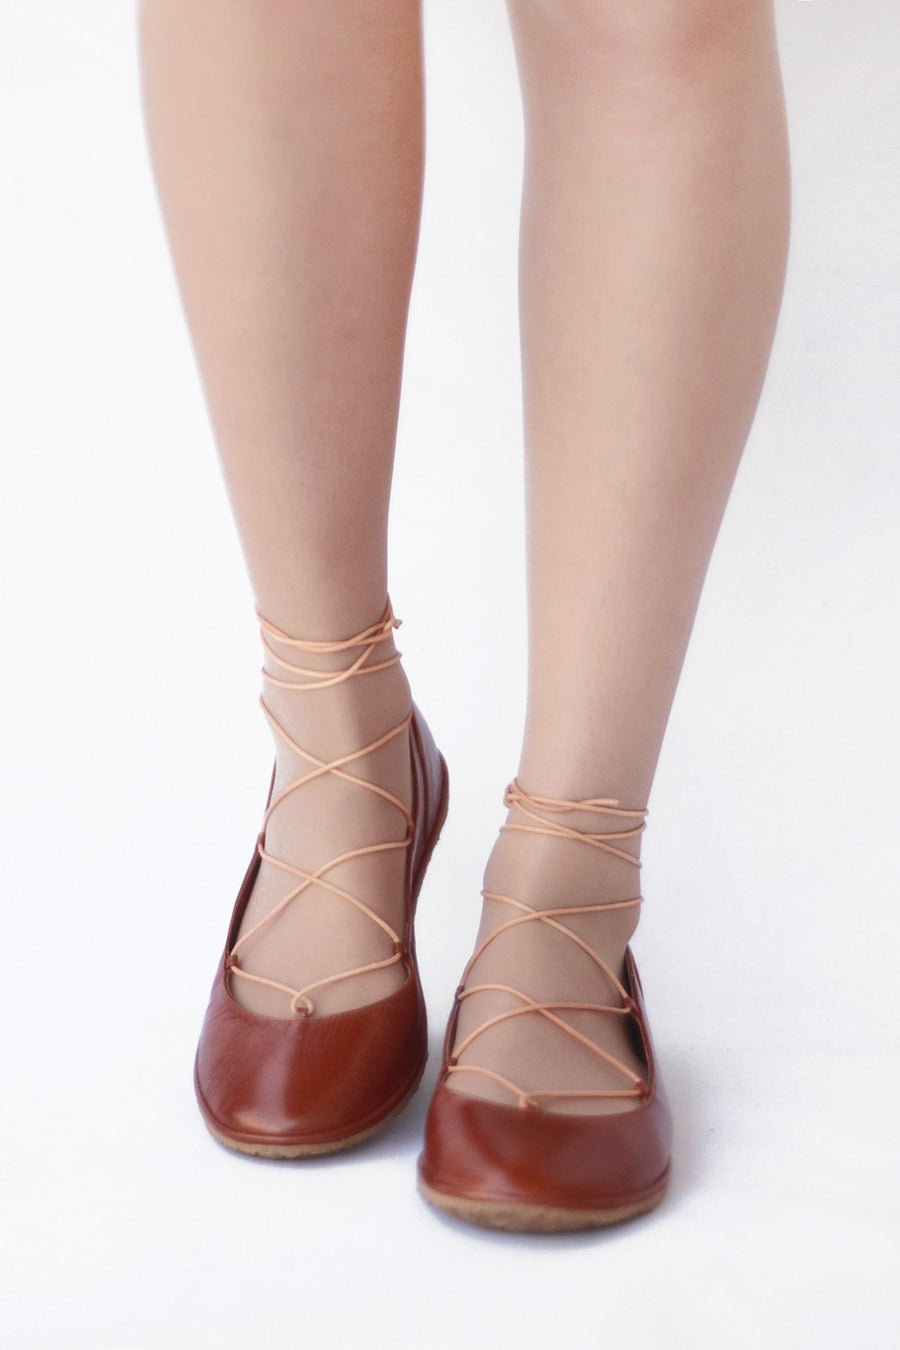 Image of Lace up ballet flats in Warm Brown